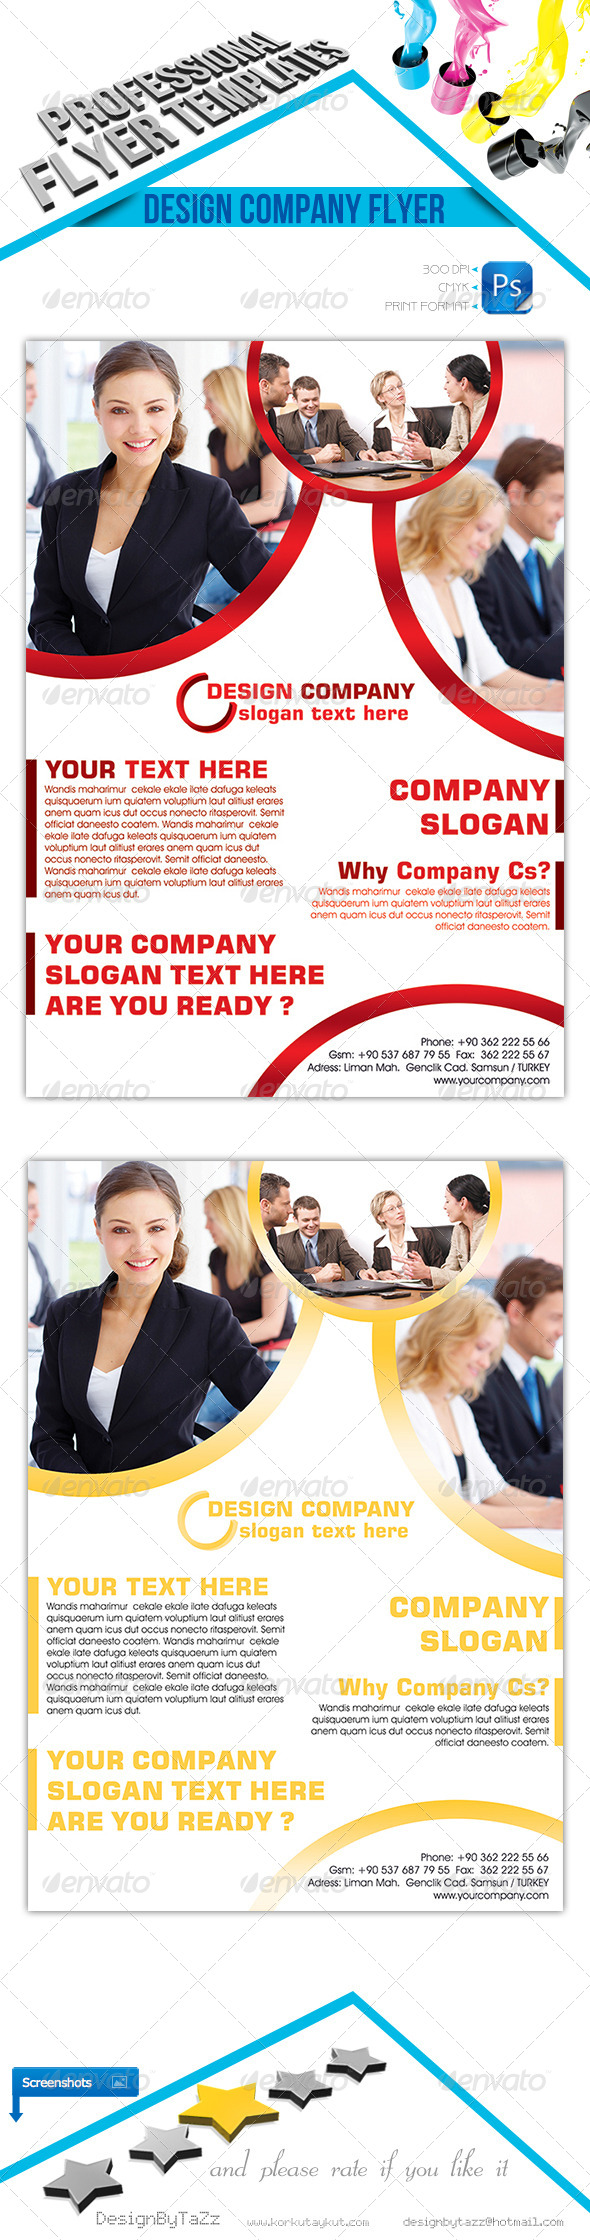 Design Company Flyer Template - Corporate Flyers